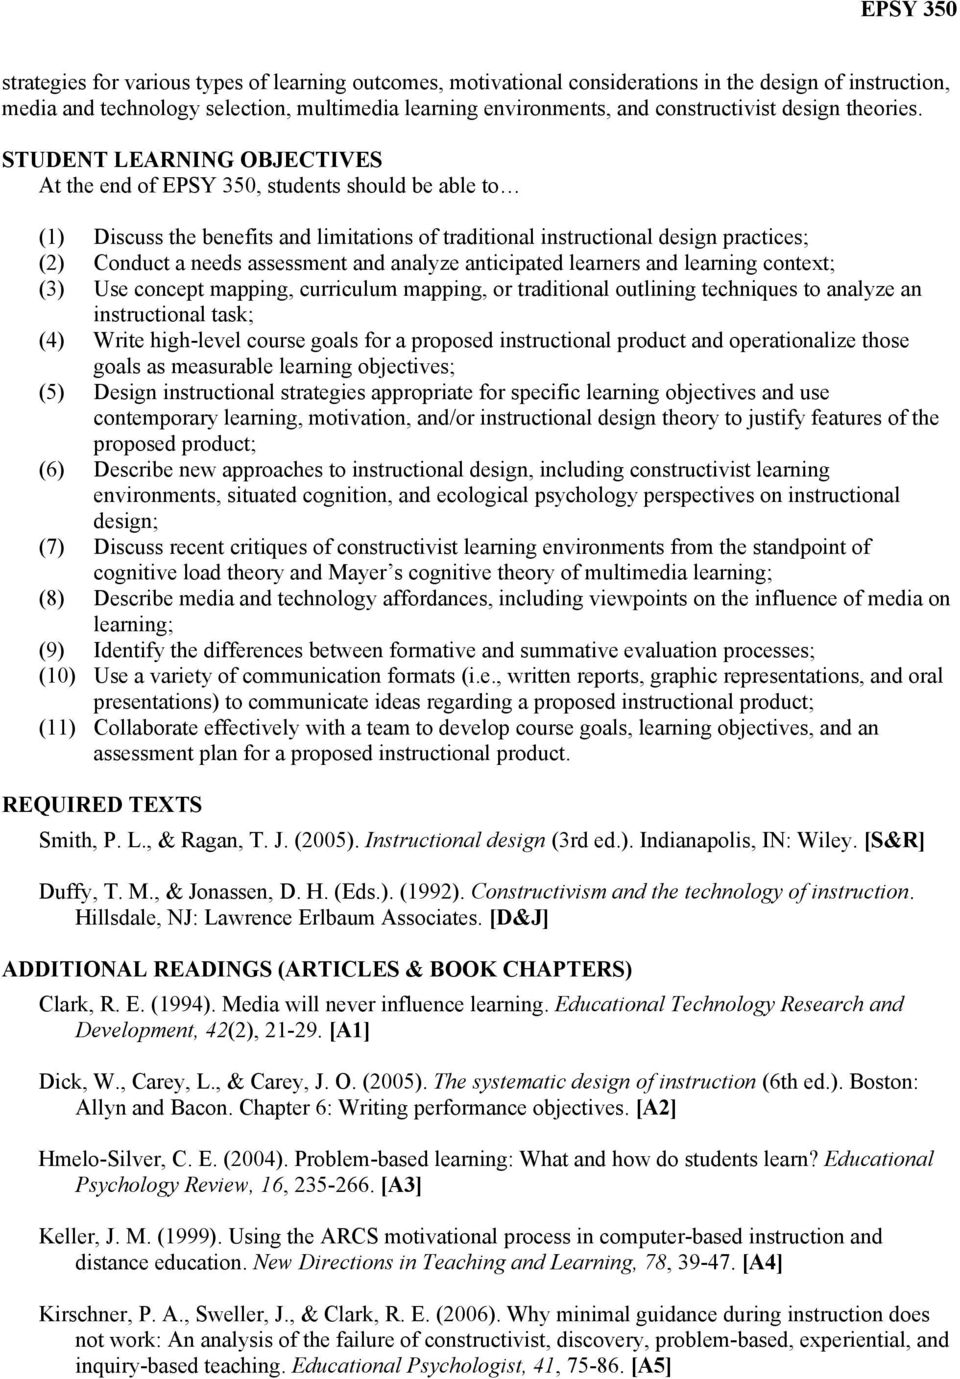 Syllabus Response Epsy 350 Instructional Design Cognition And Instruction Comprehensive Exam Anthony R Artino Jr University Of Connecticut Pdf Free Download